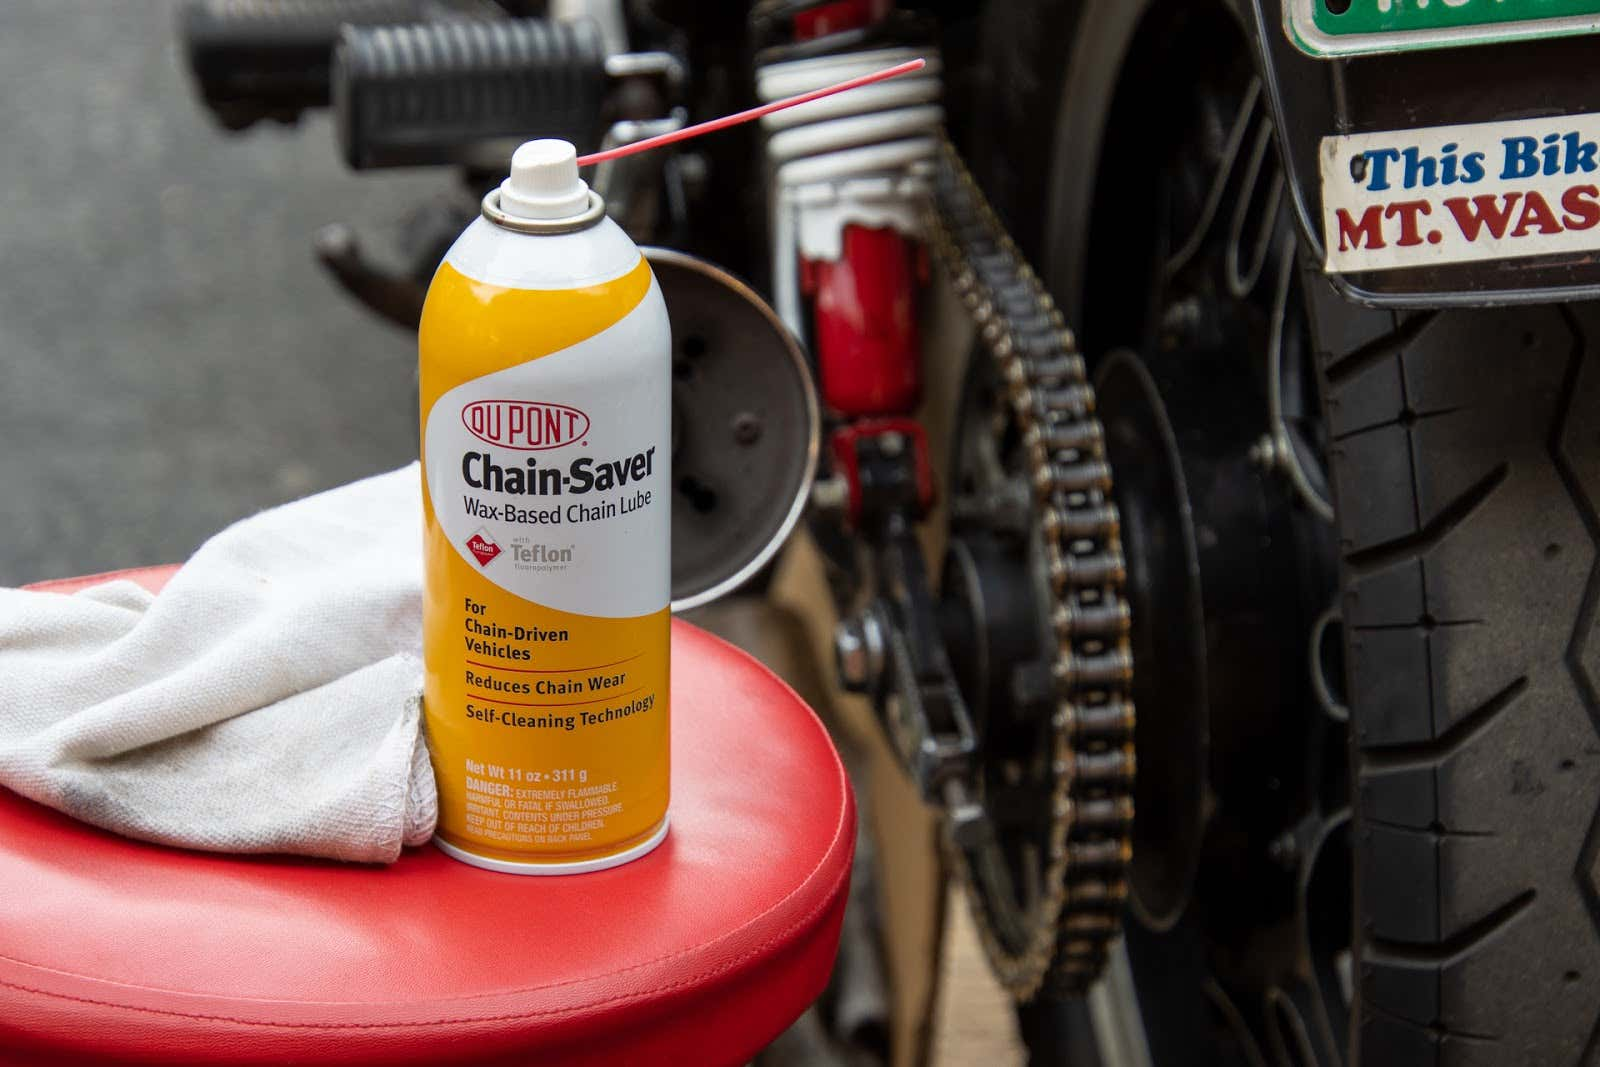 Dupont Chain Saver